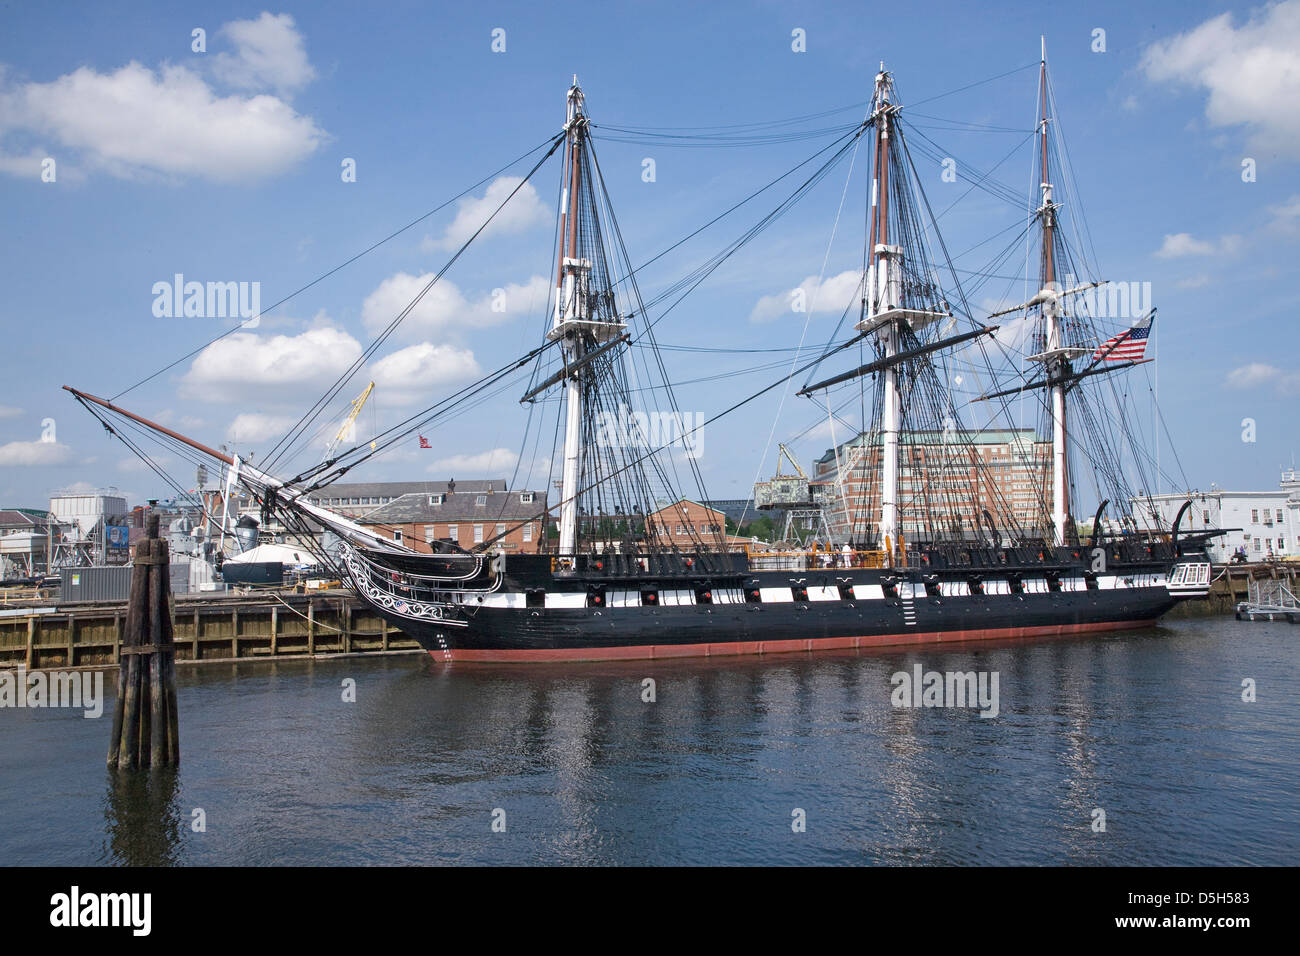 Old Ironsides, the historic USS Constitution, Charlestown, Boston, MA - Stock Image